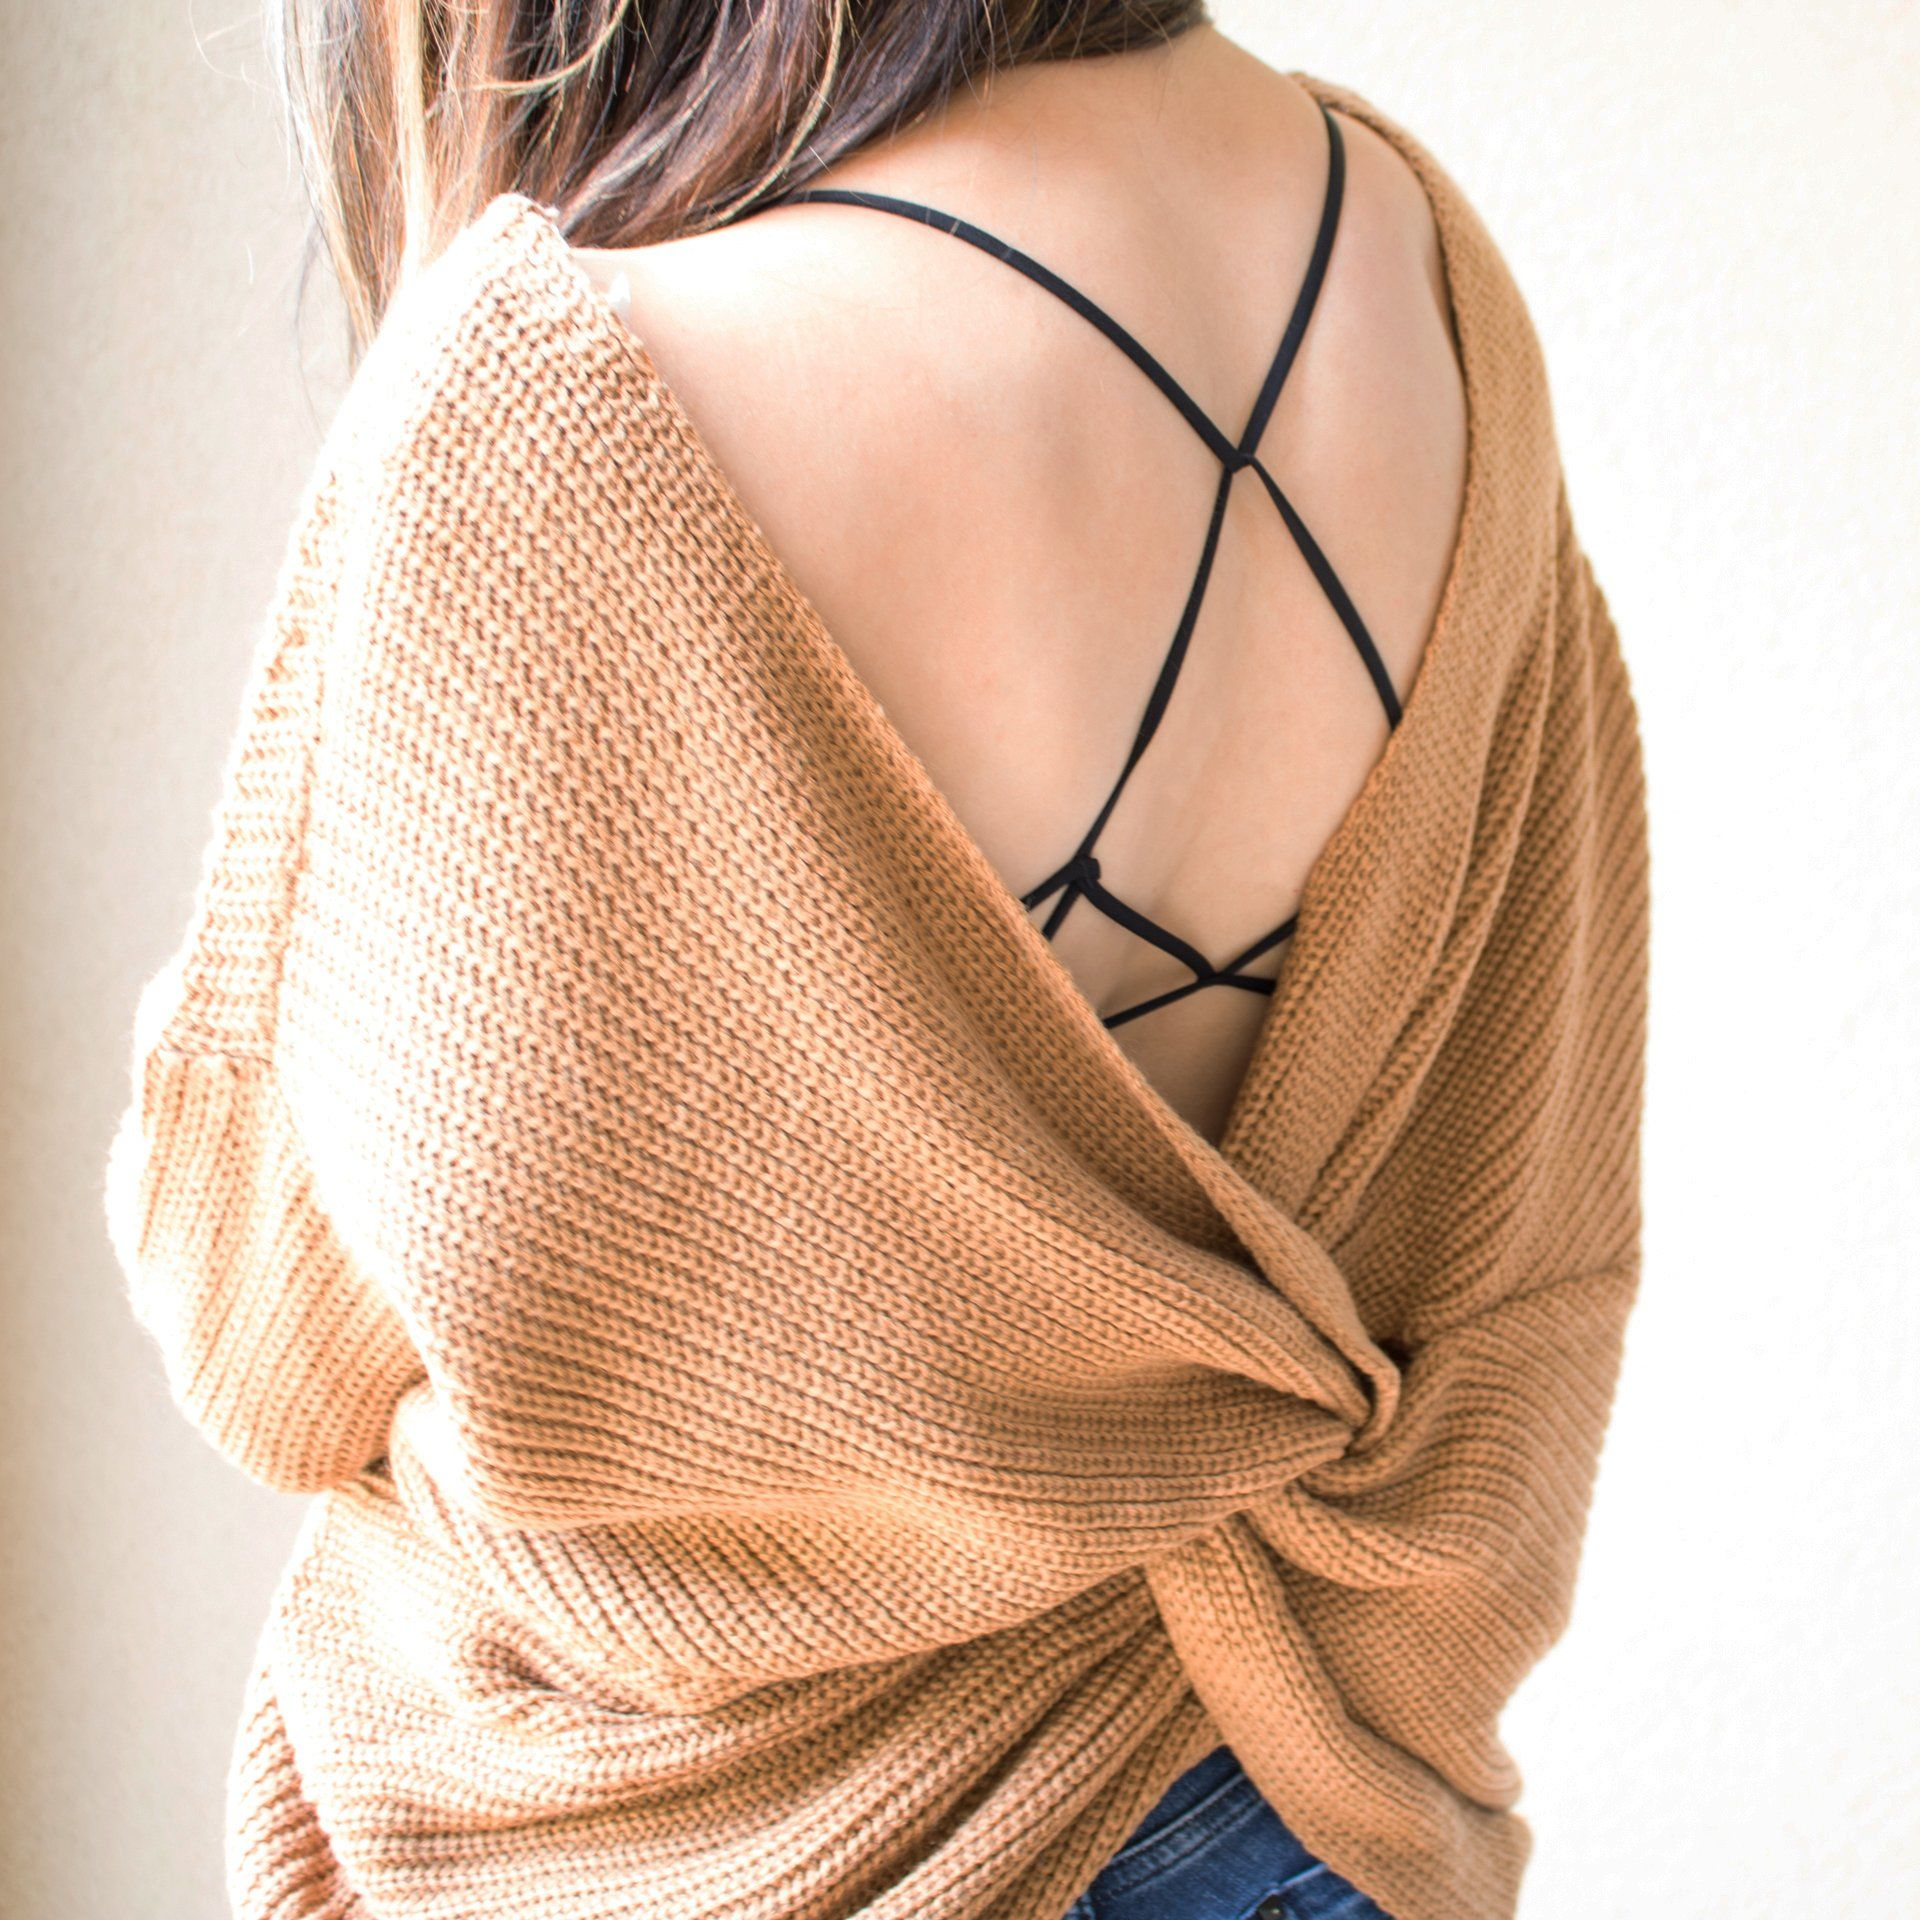 'Knox' Strappy Back Bralette - Arlo and Arrows